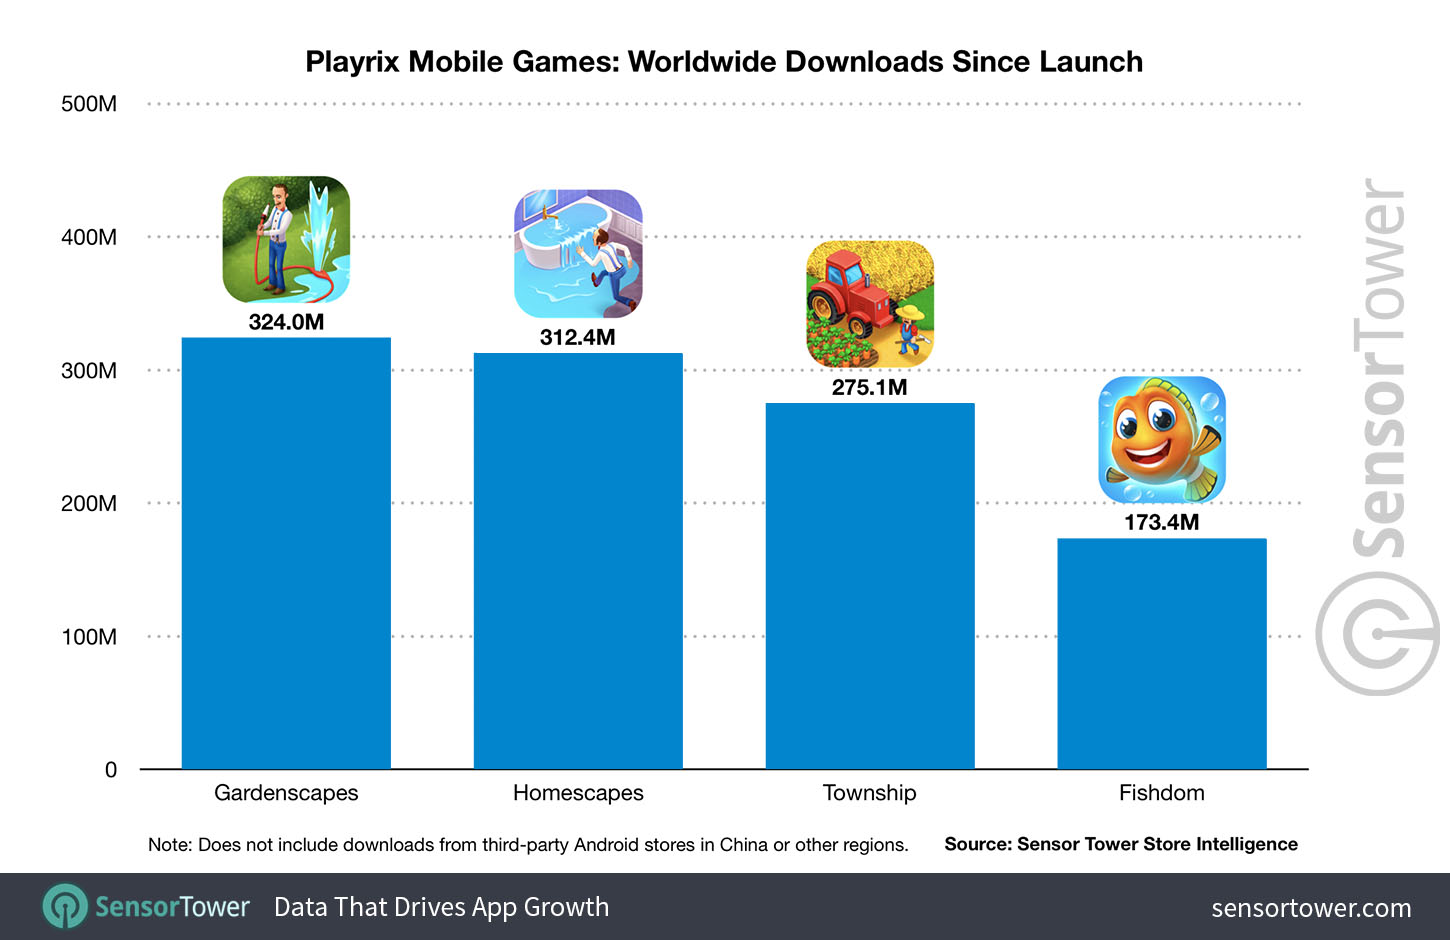 playrix-mobile-games-worldwide-downloads-since-launch